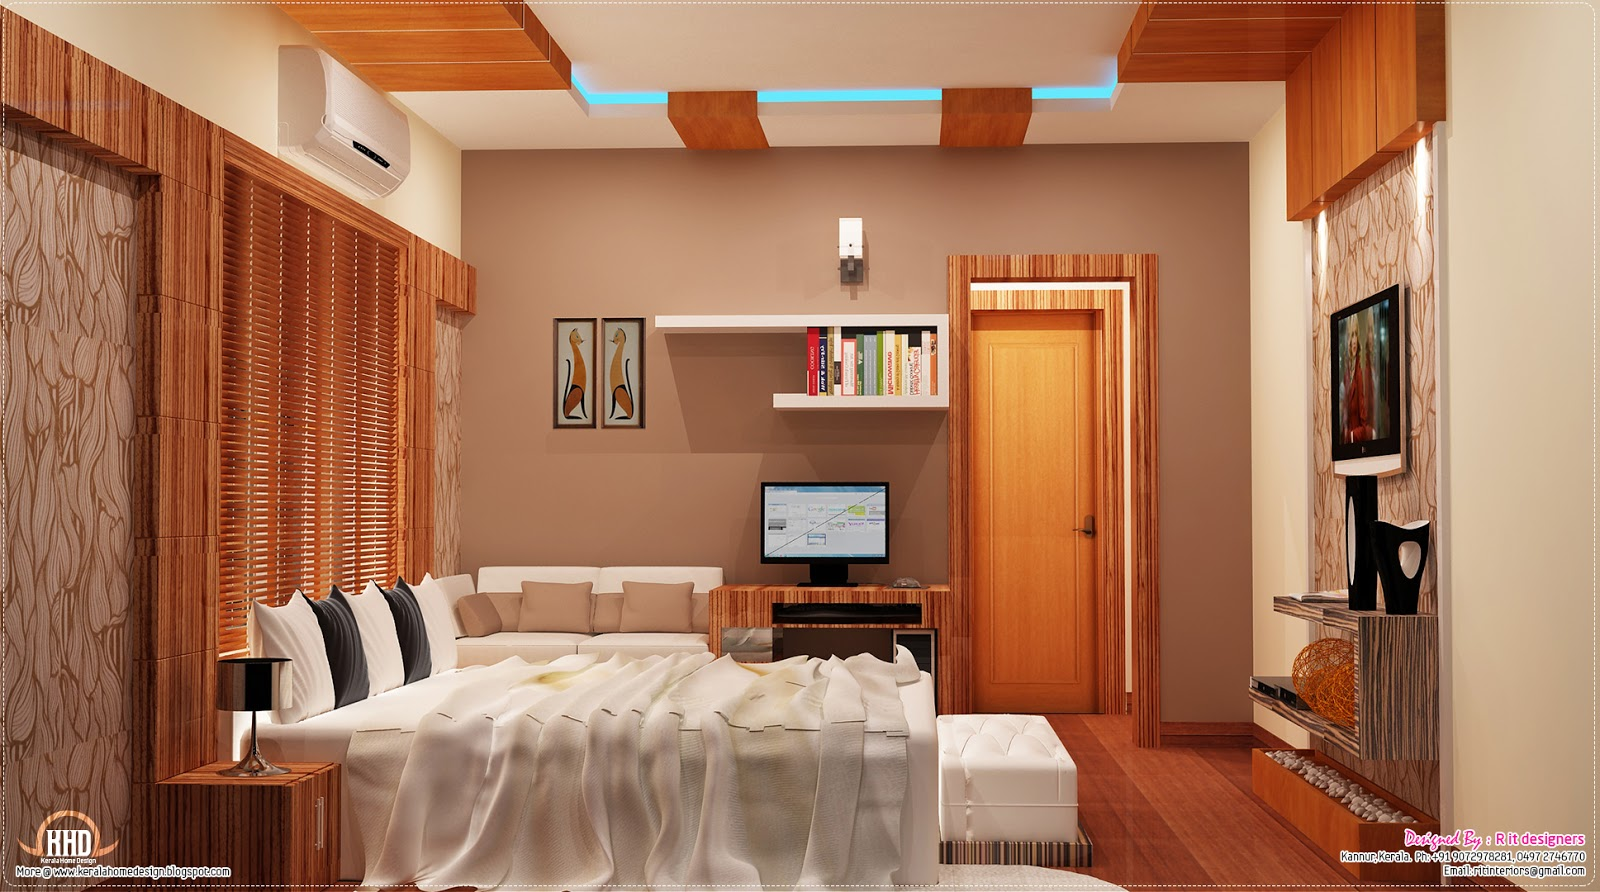 2700 sq.feet Kerala home with interior designs | House ...